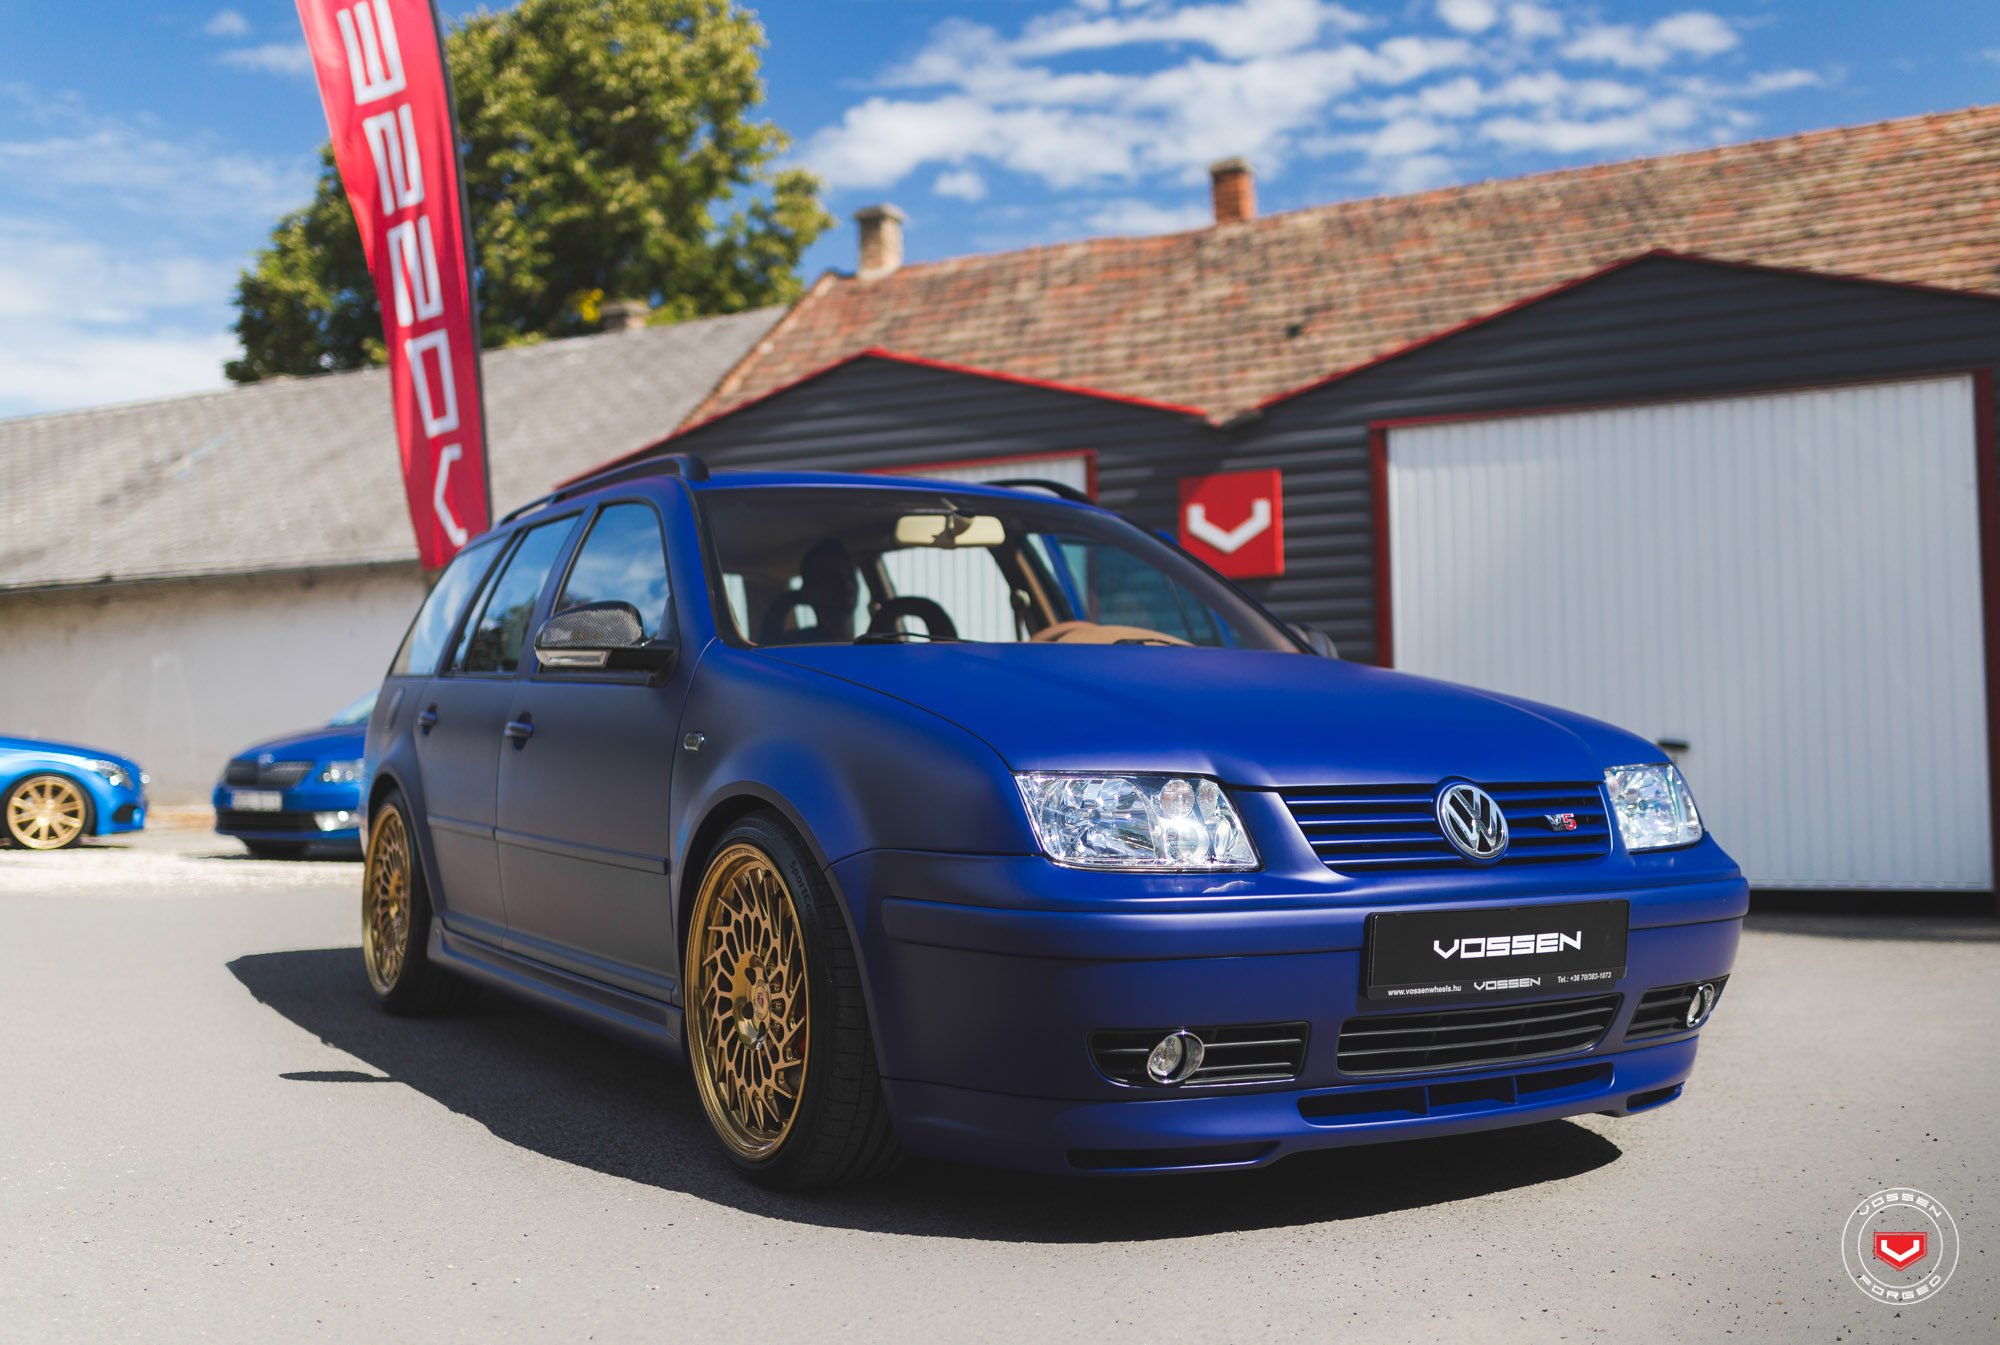 custom 2004 volkswagen jetta images mods photos upgrades carid com gallery custom 2004 volkswagen jetta images